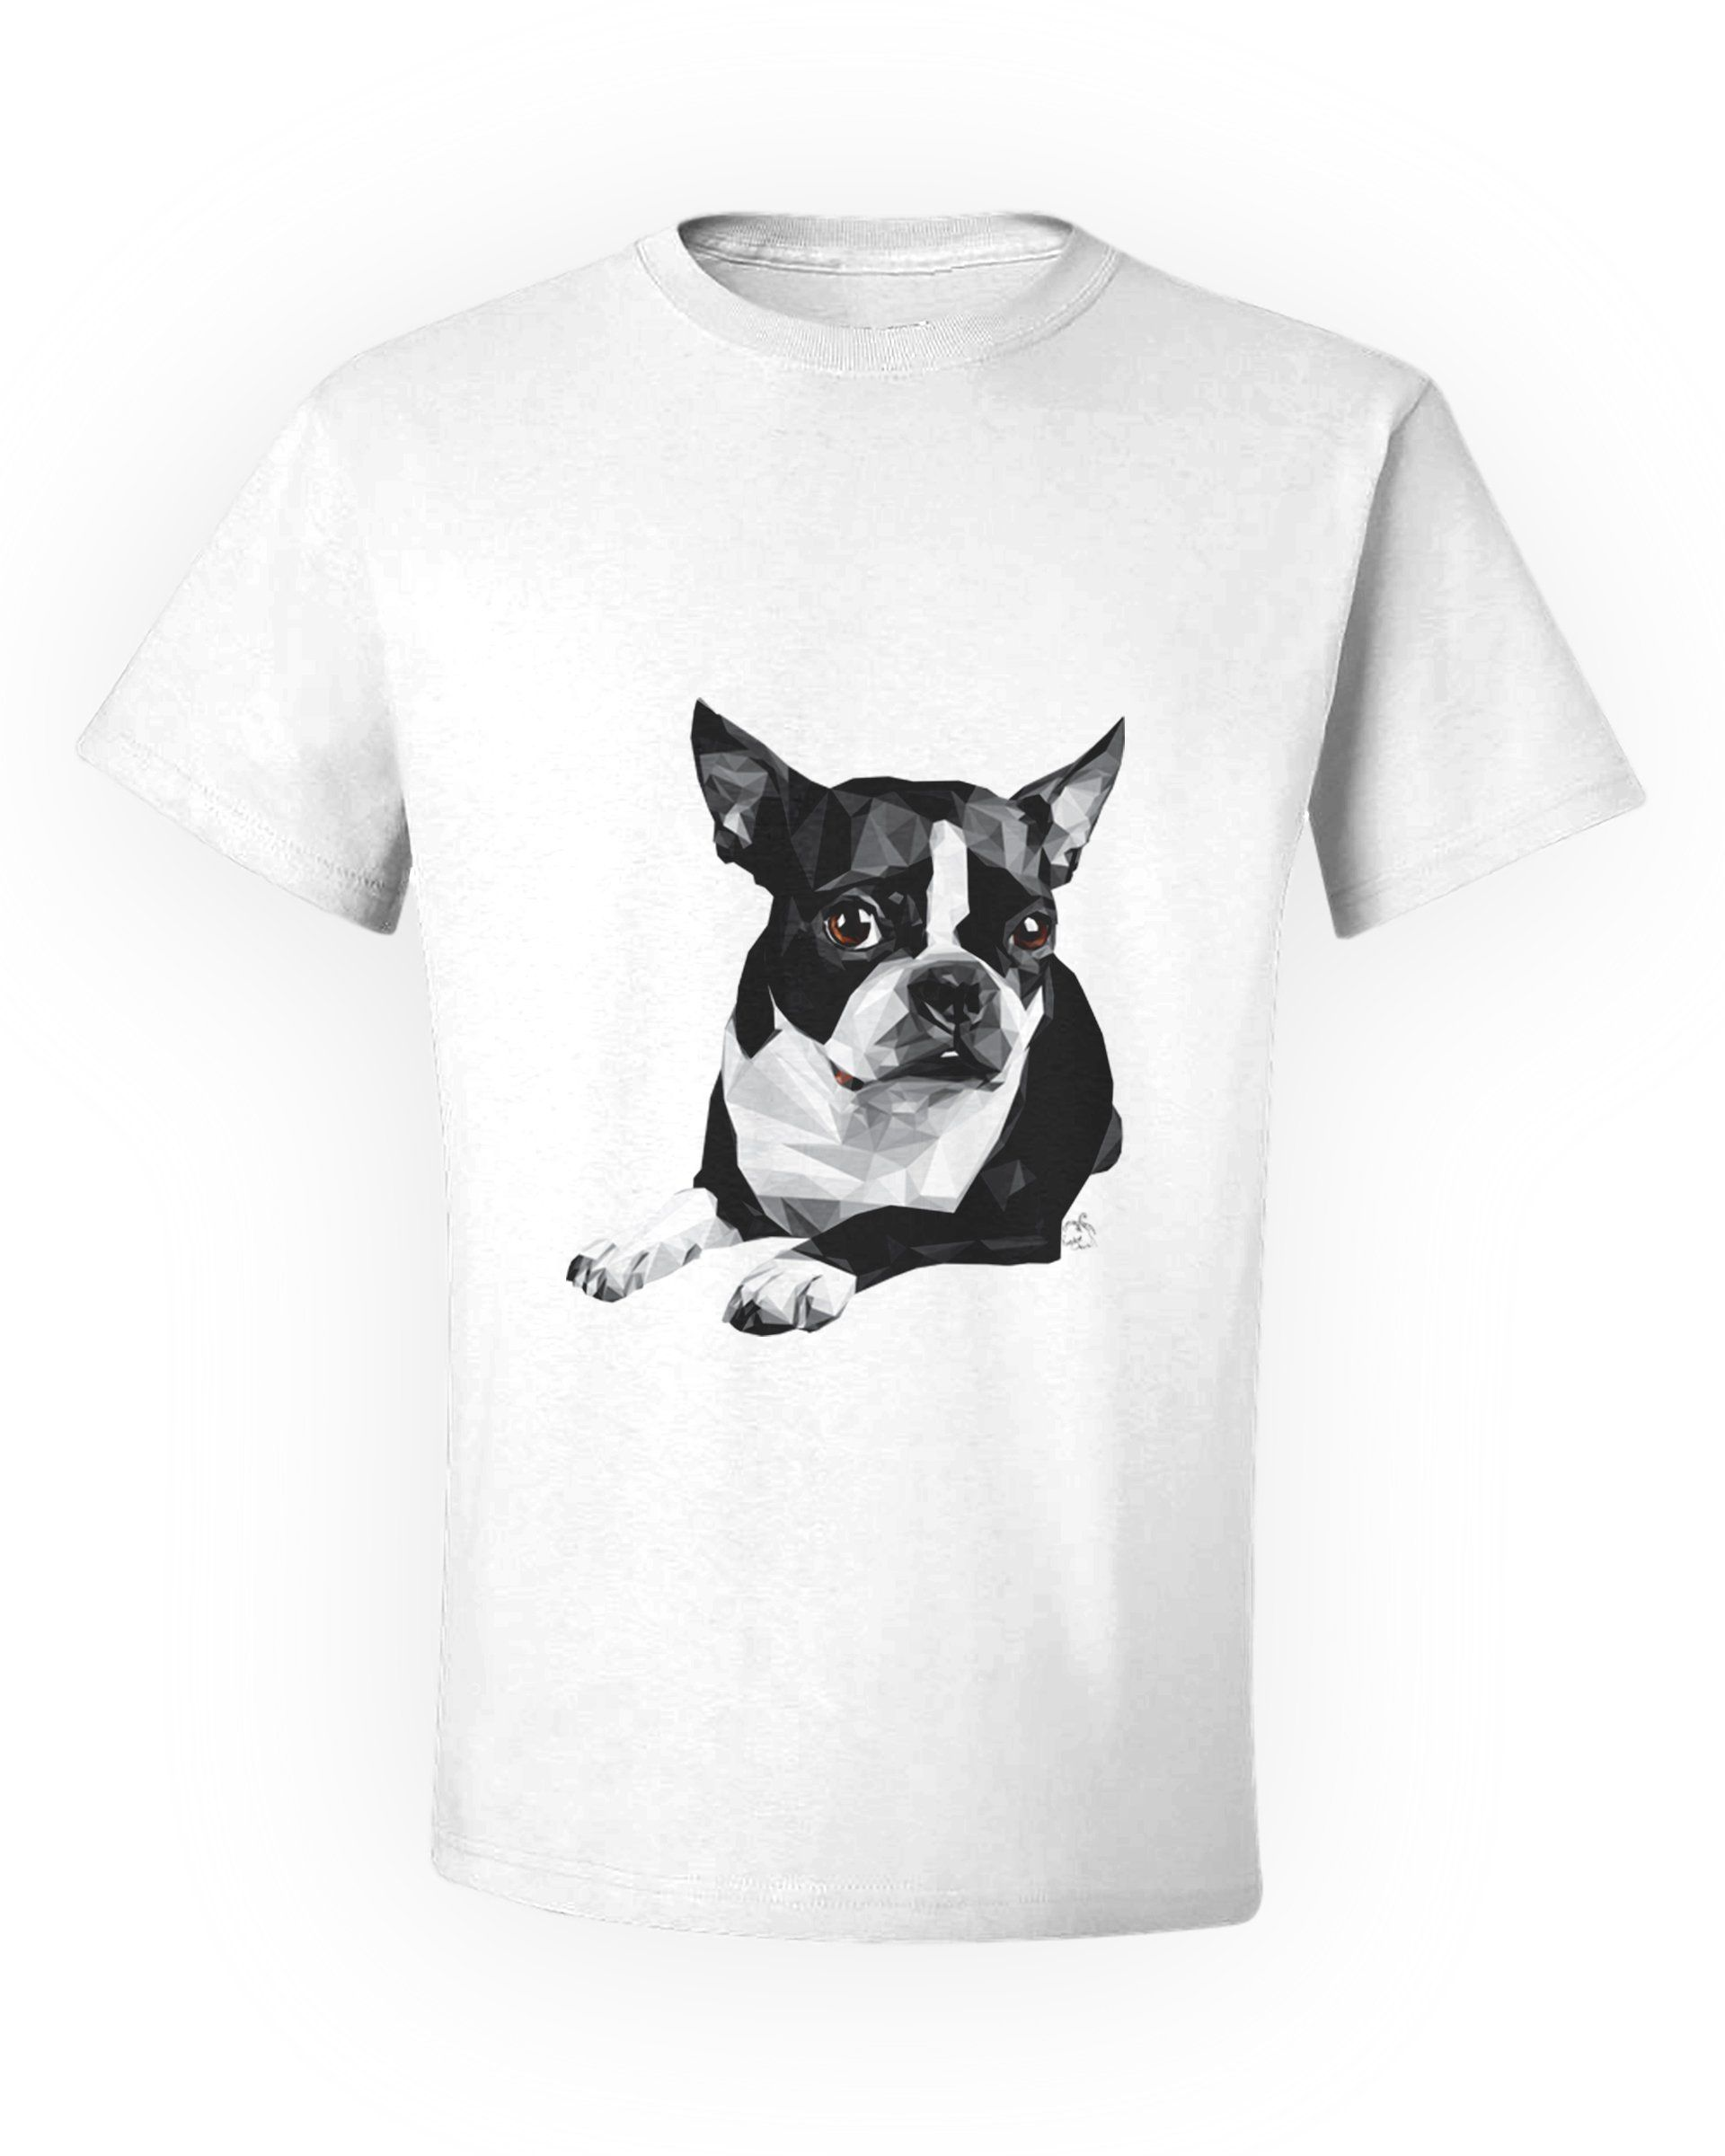 OWNED BY A BOSTON TERRIER T-SHIRT For Dog Lover Pet Owner Black Cotton Gift